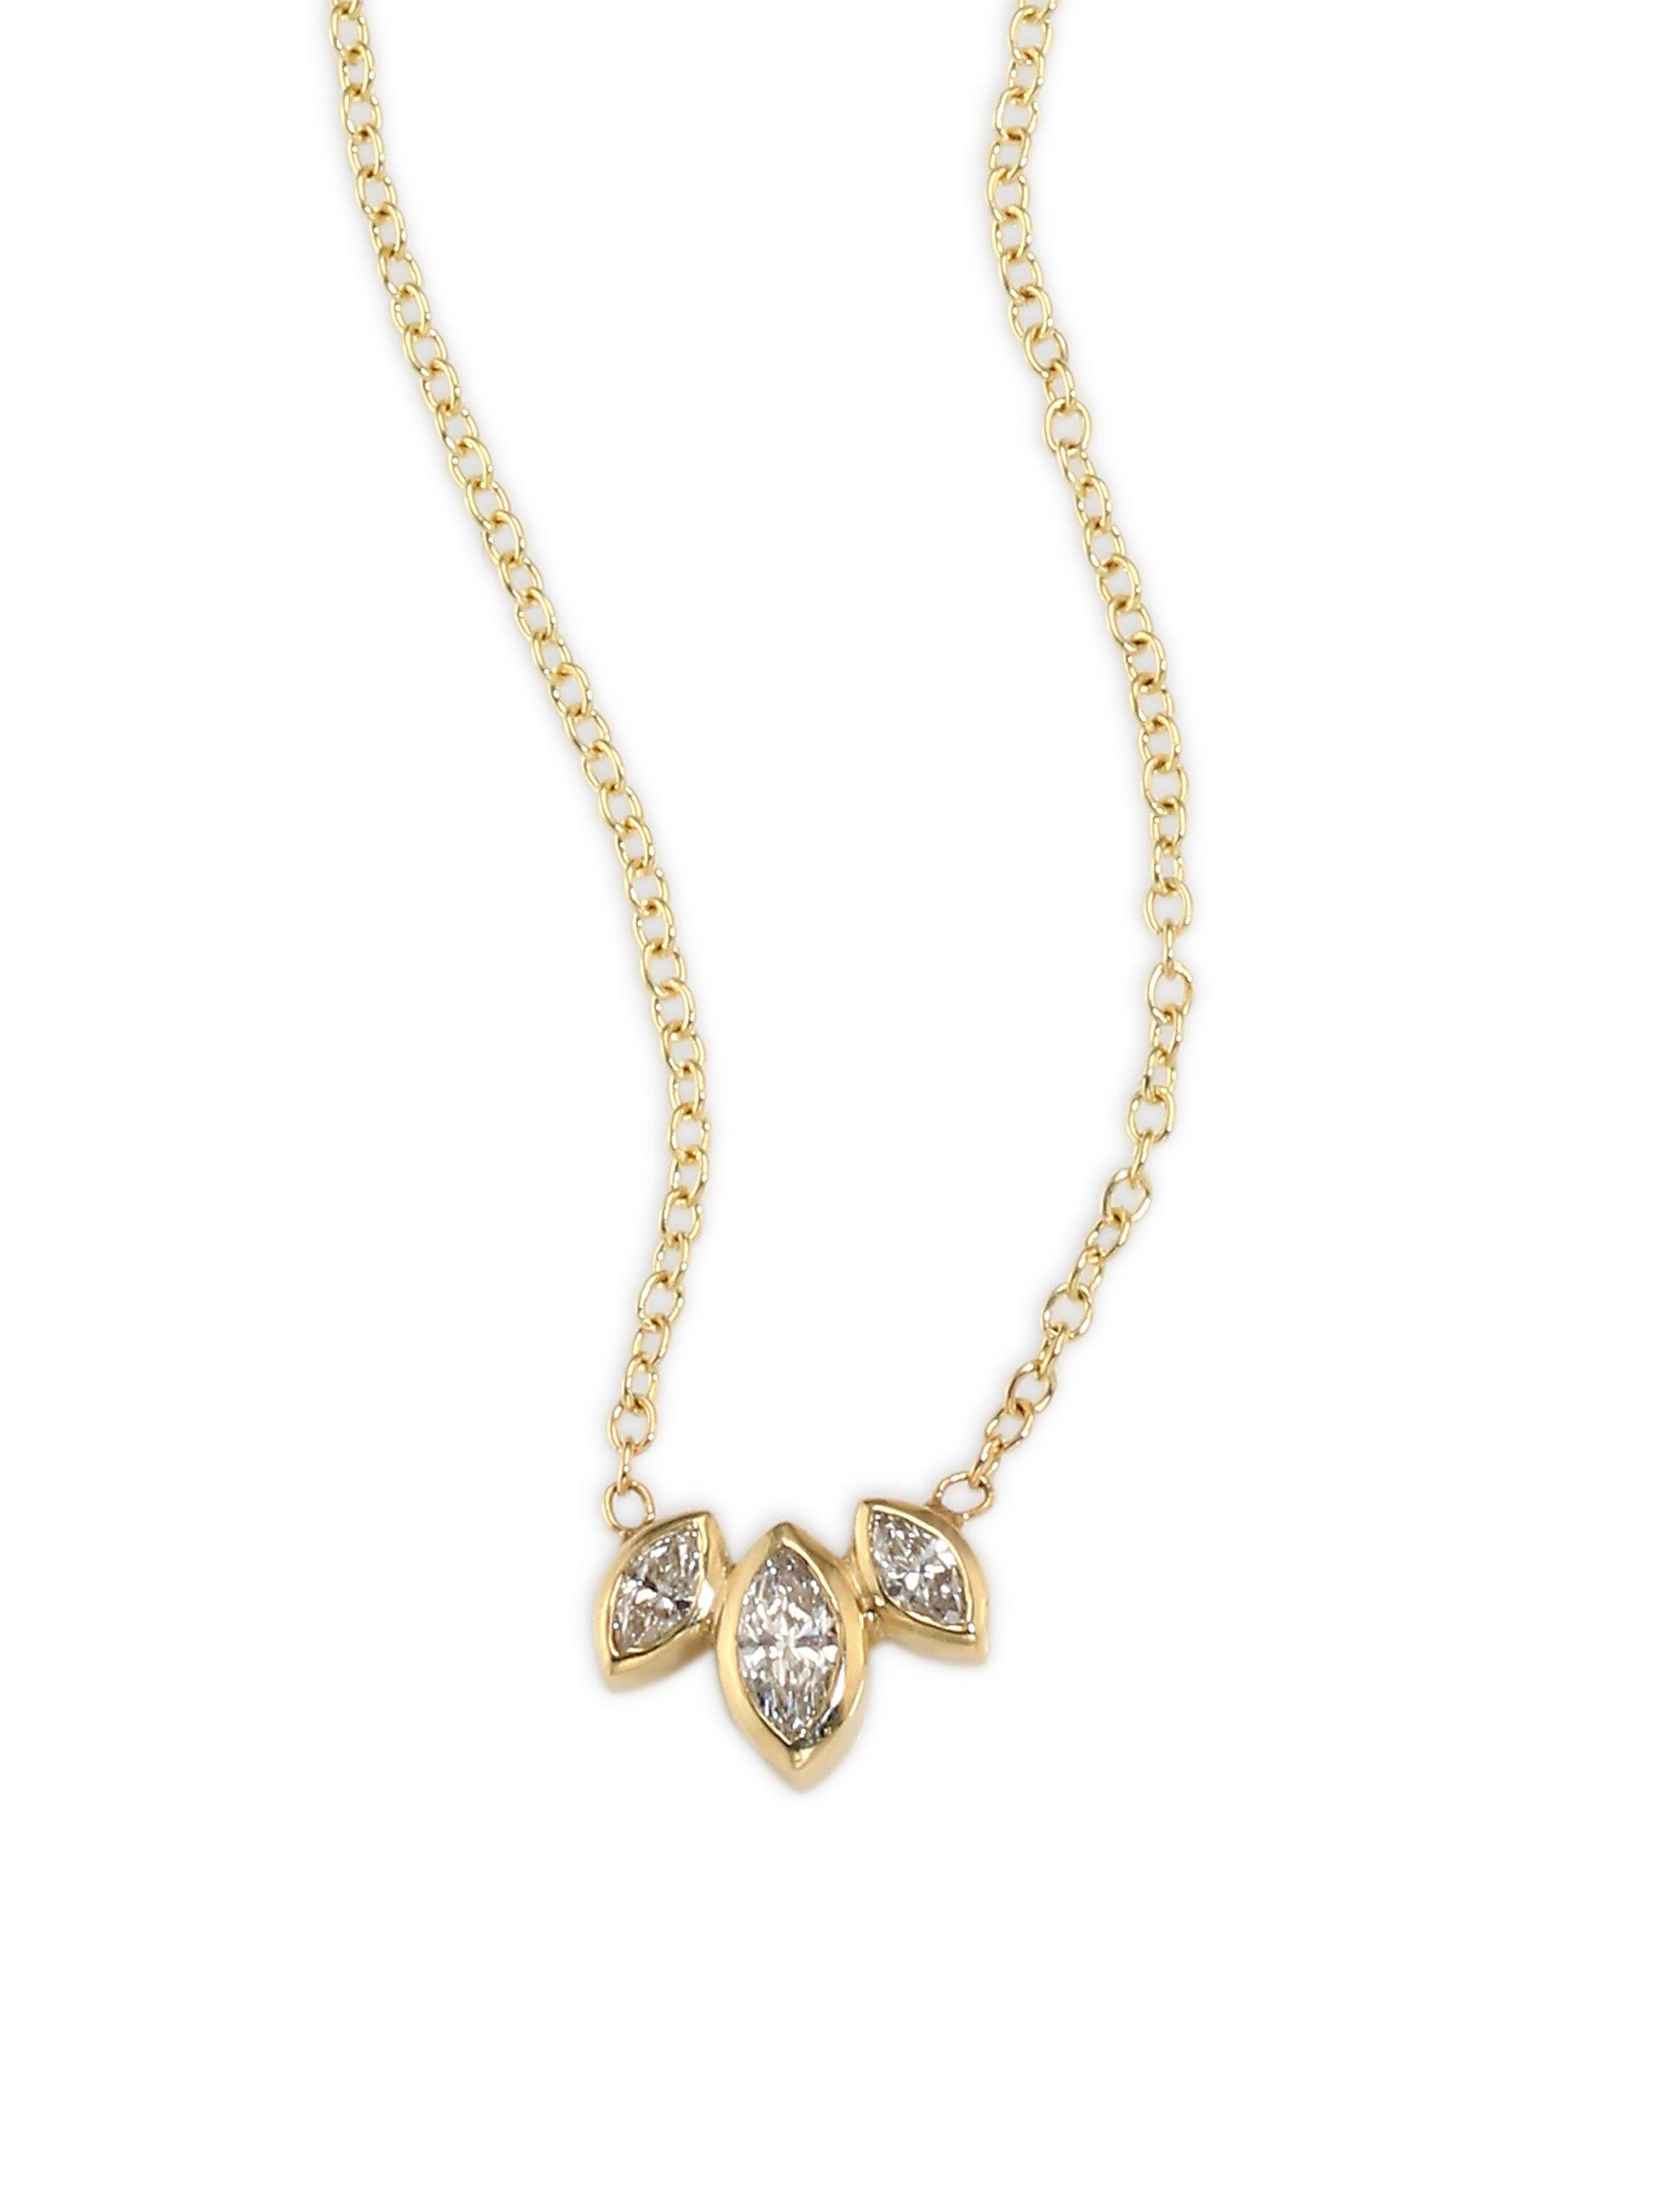 necklace marquis collections on mile miracle karat necklaces regent white cu n jewelers types diamond gold